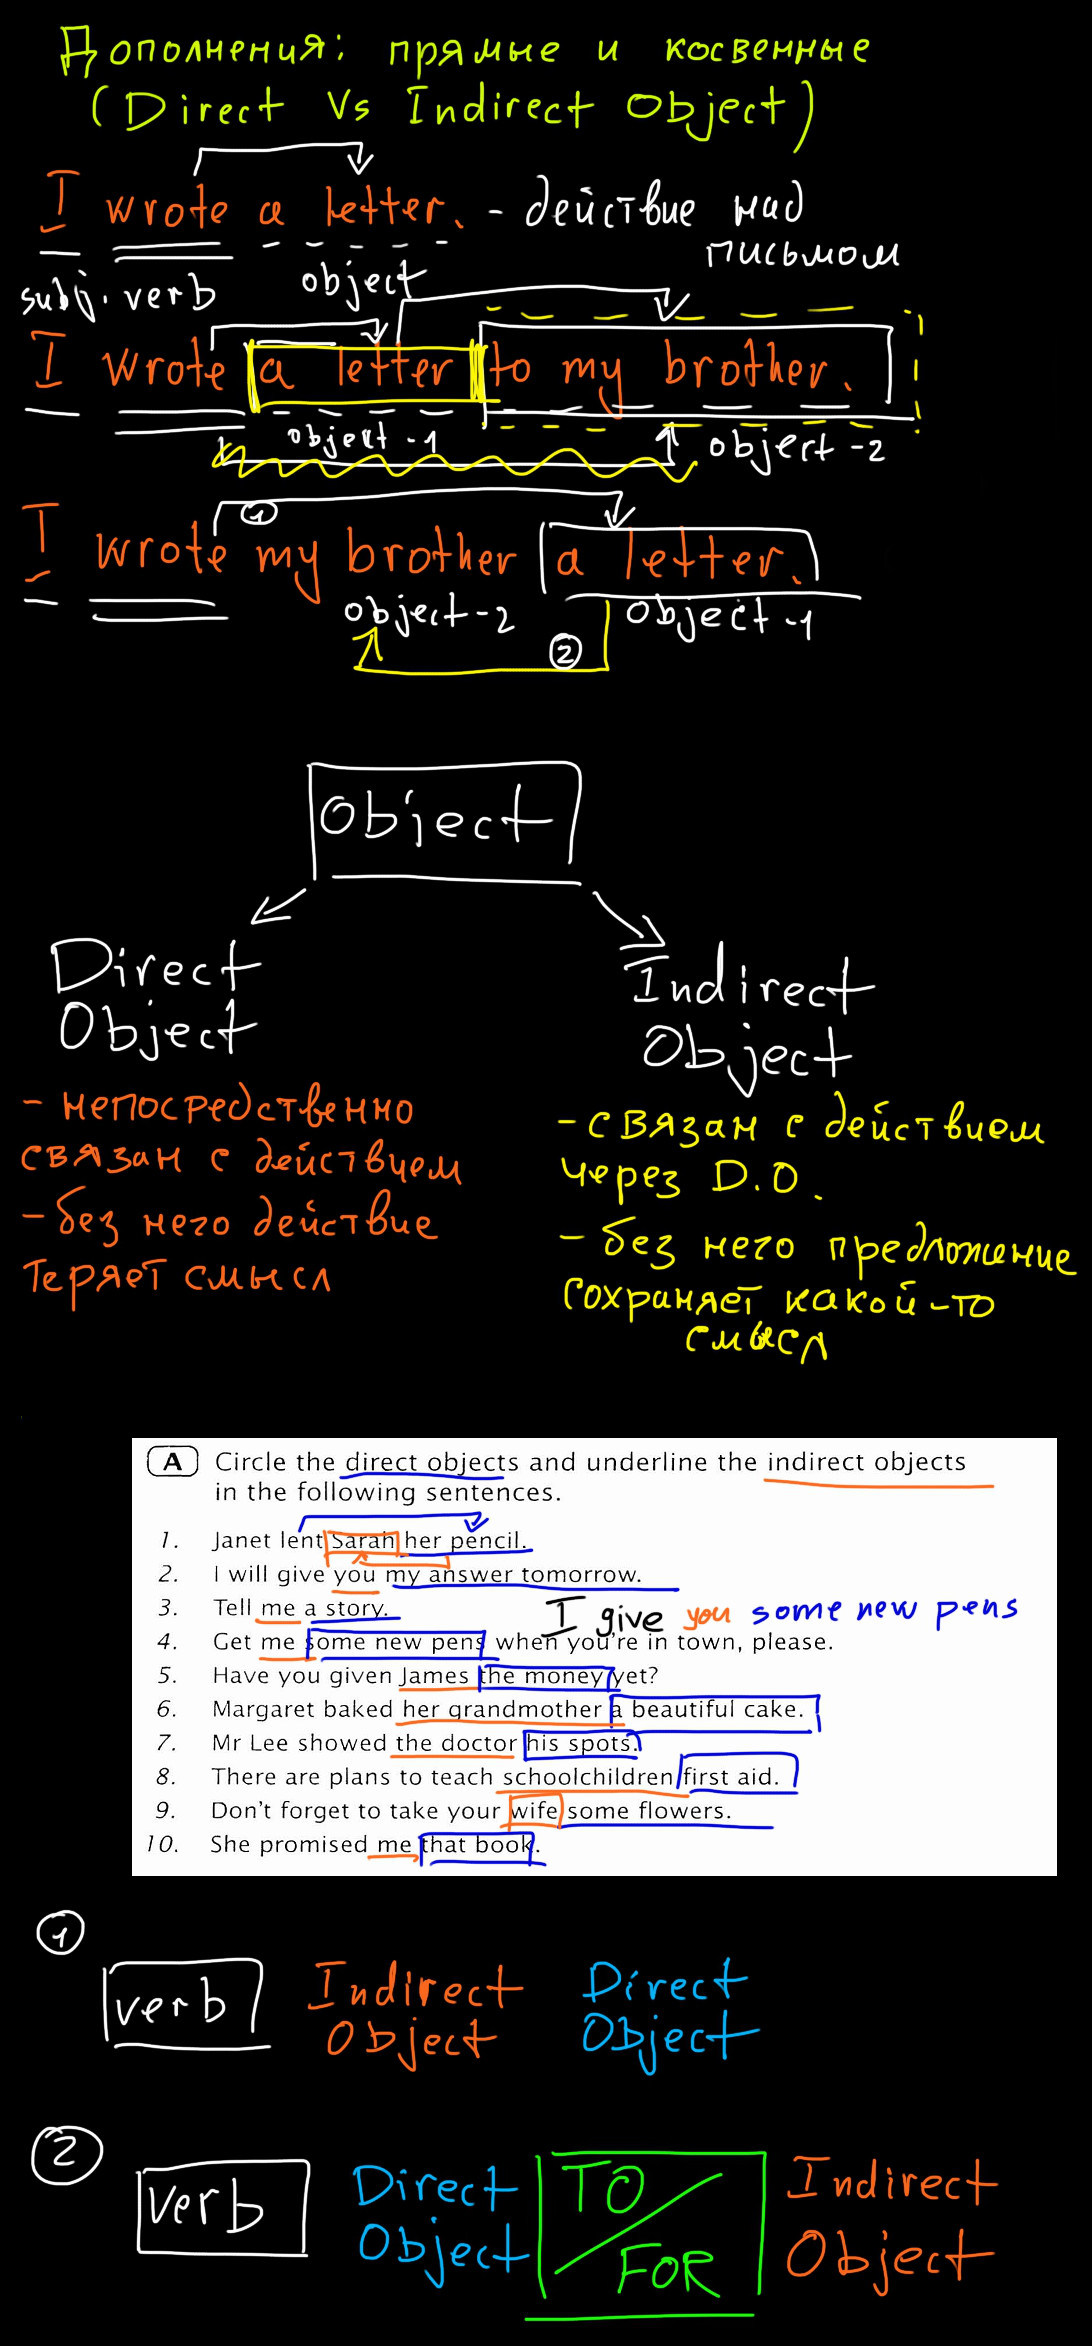 Direct Vs Indirect Object